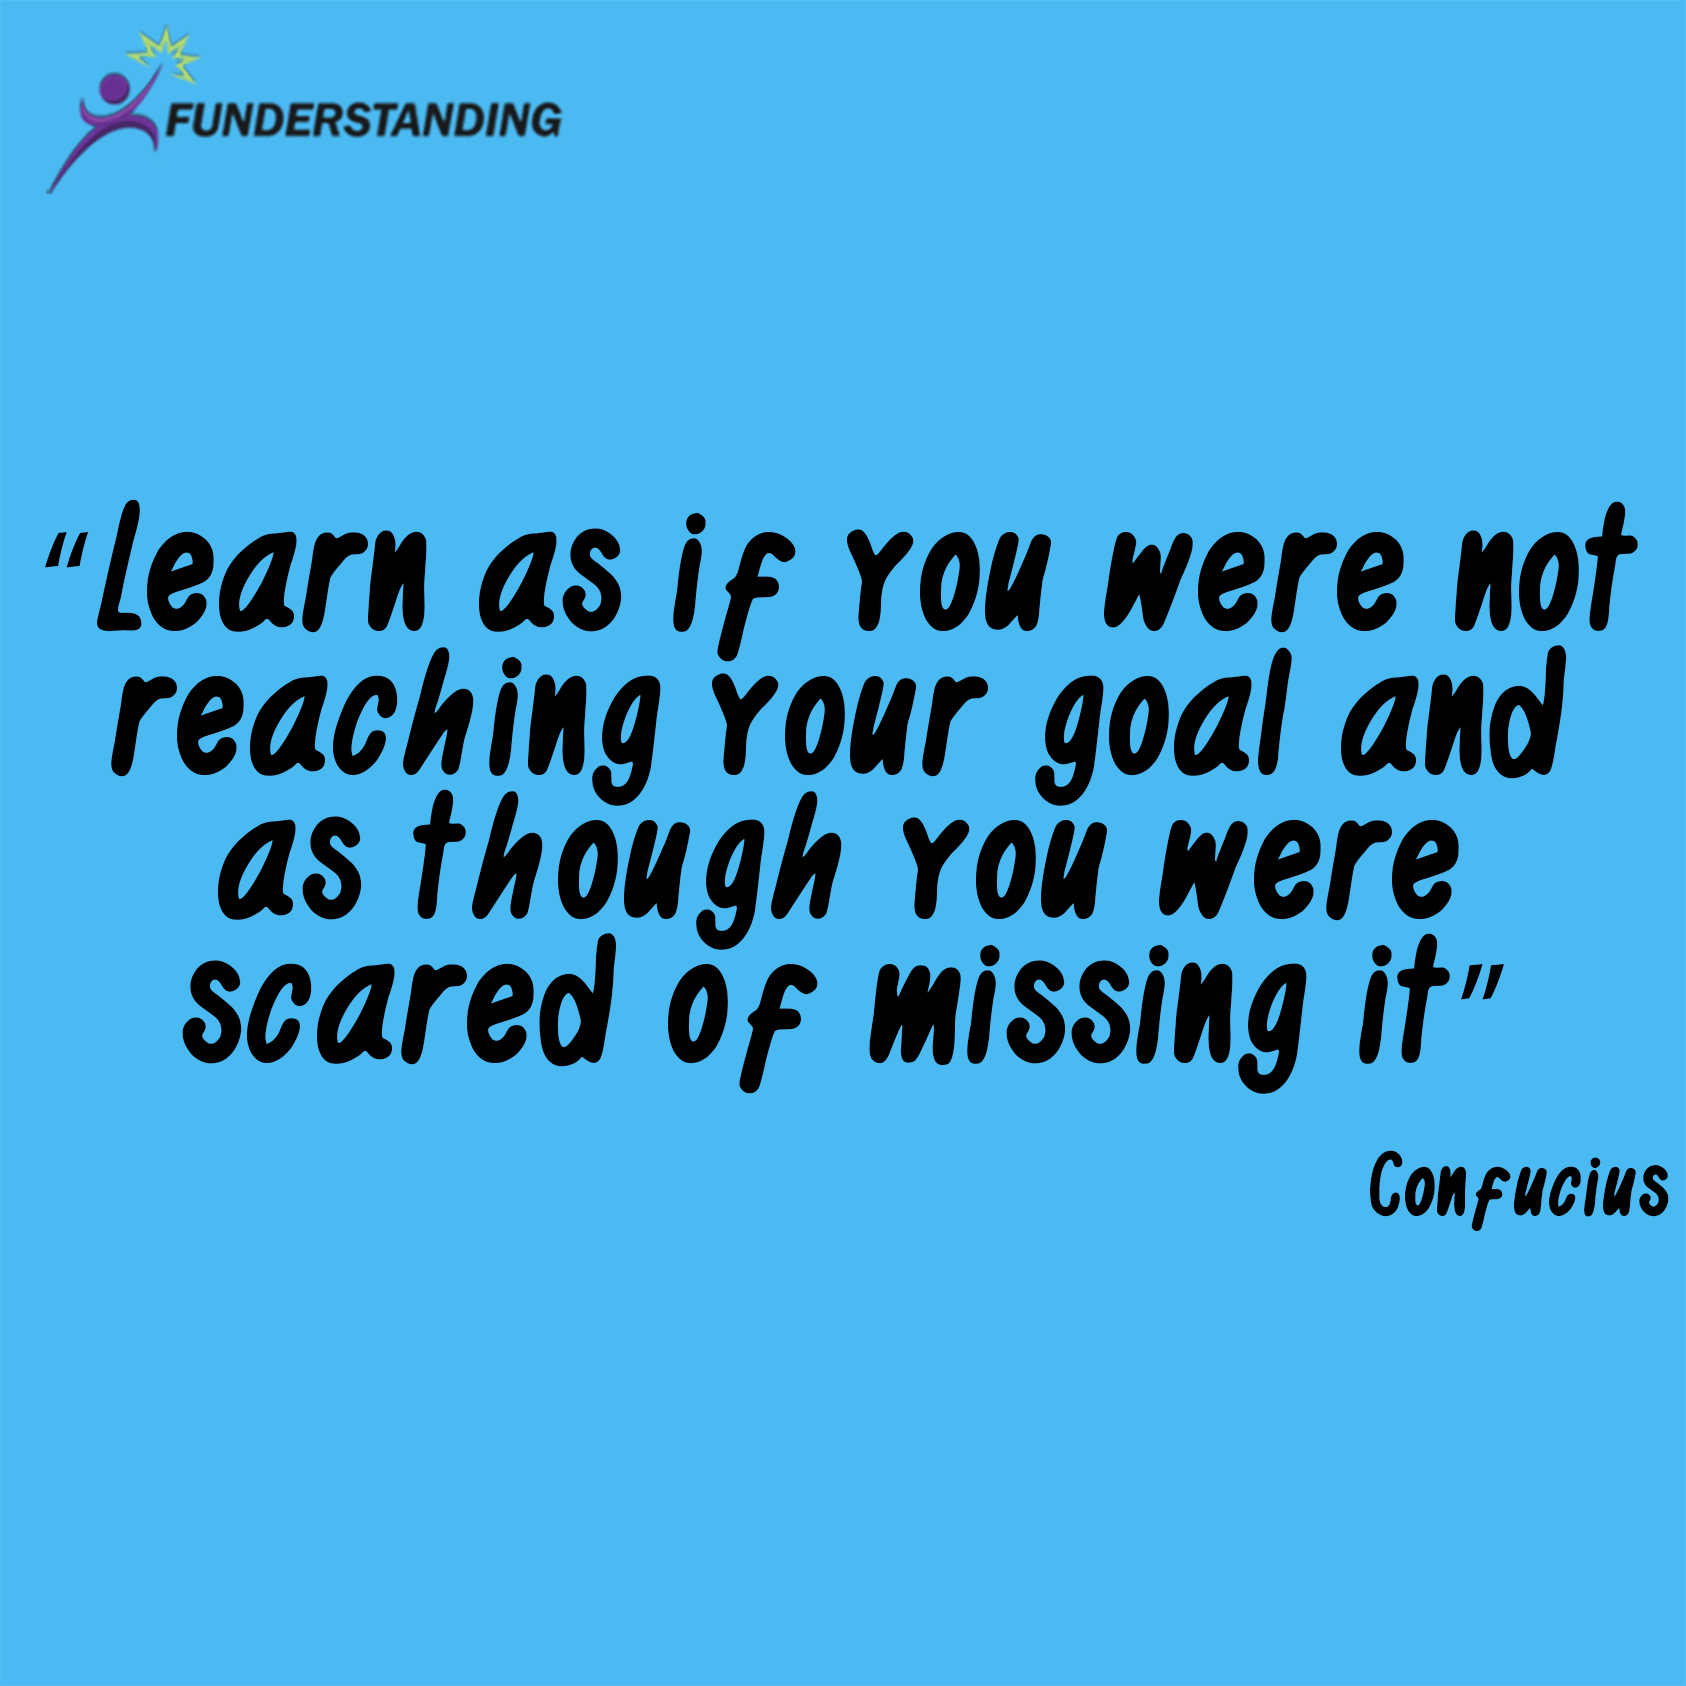 Qoute For The Day Quoteoftheday30Funderstanding  Funderstanding Education